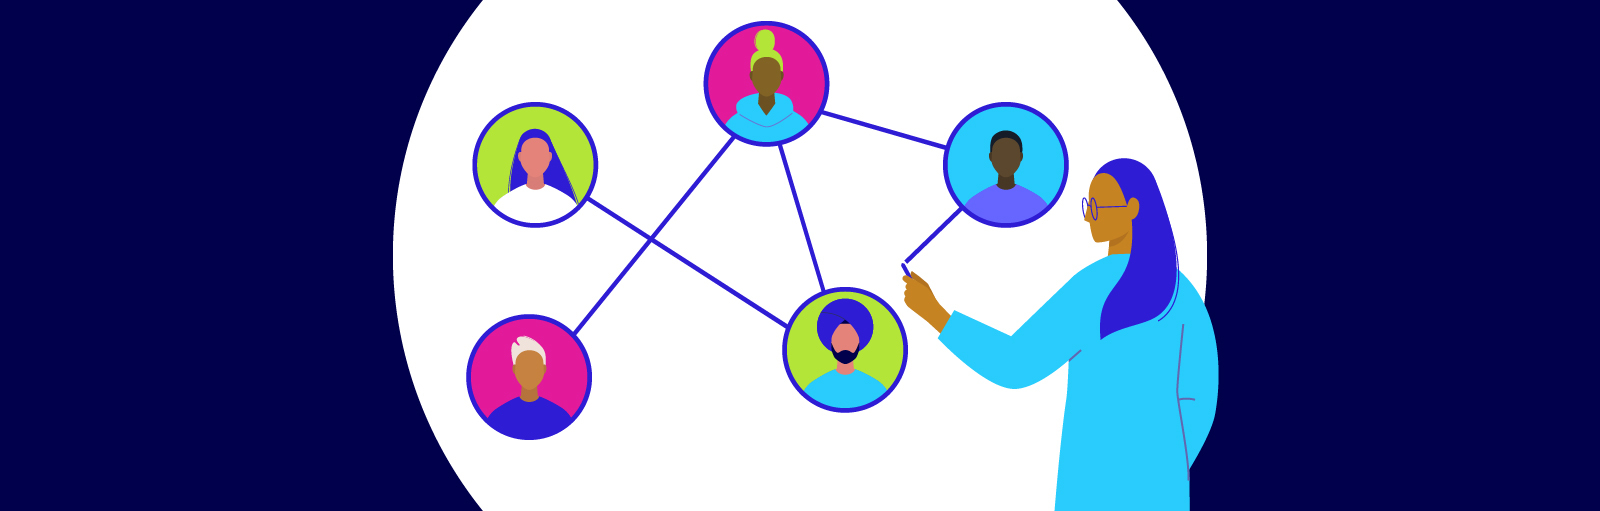 What to look for in an online community platform